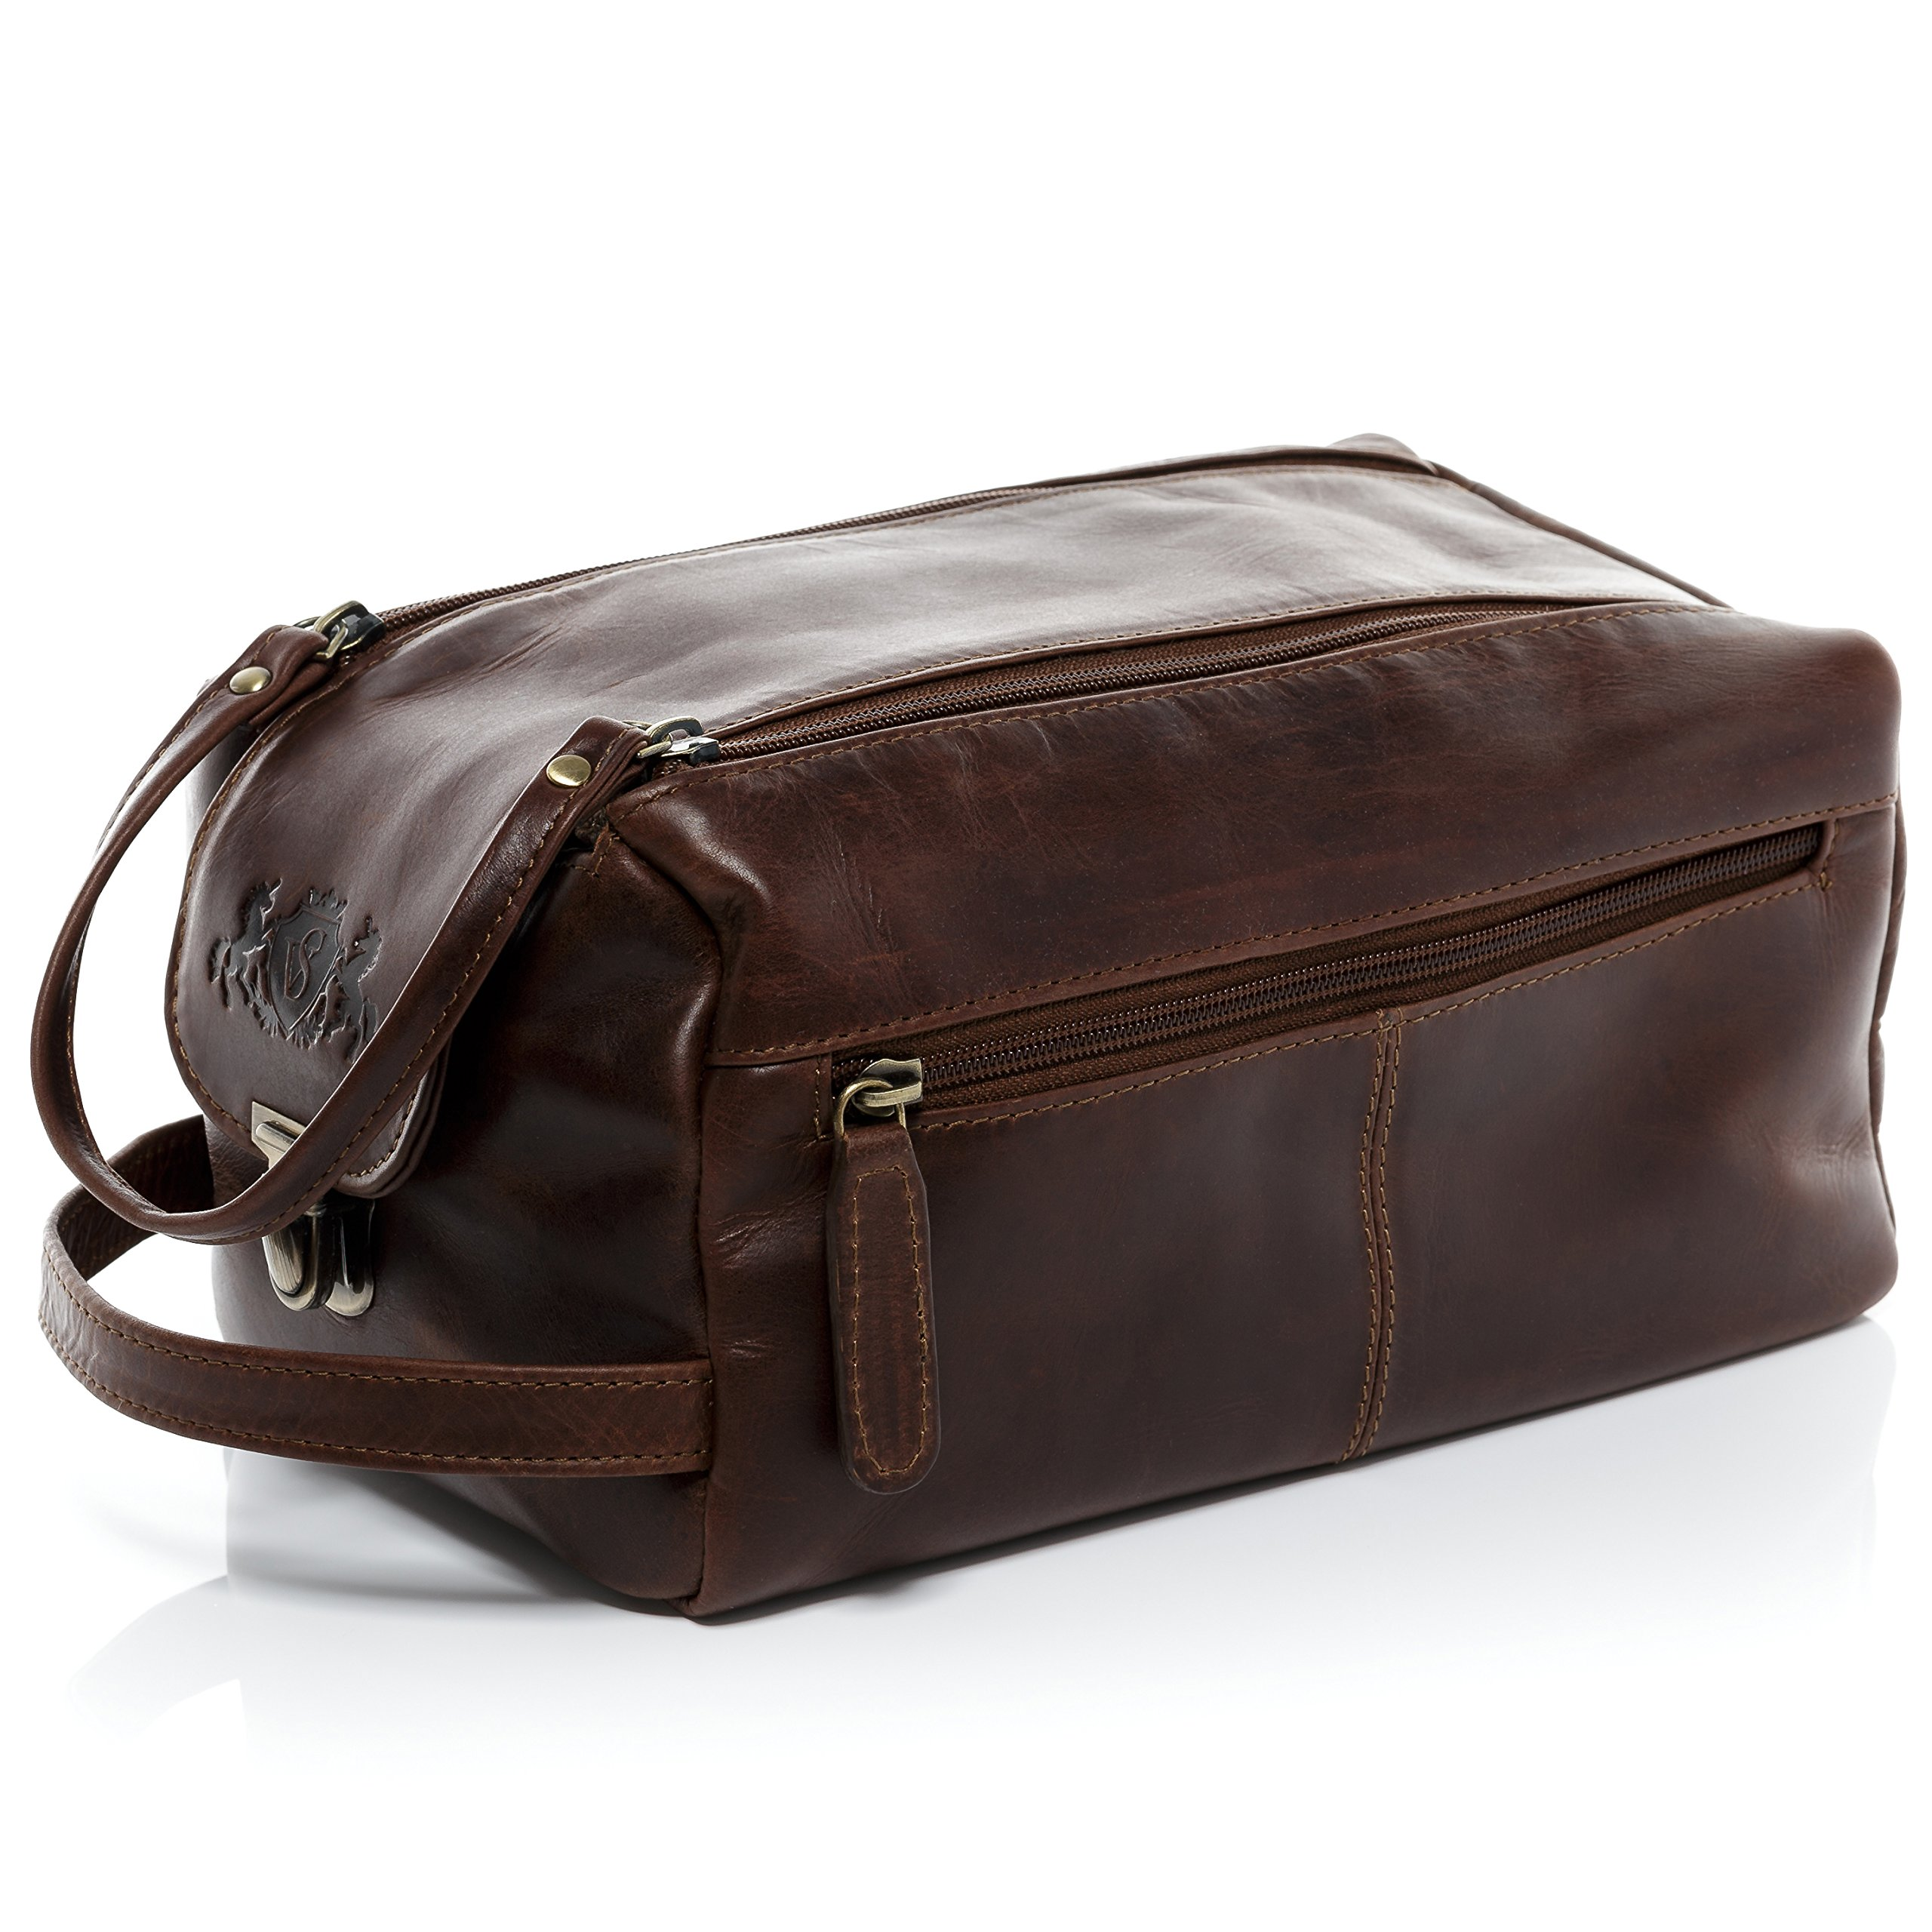 SID & VAIN Real Leather wash Bag Bristol XL Large Travel Overnight Wash Gym Shaving Bag for Men's or Ladies Toiletry Bag Women Men Brown by SID & VAIN